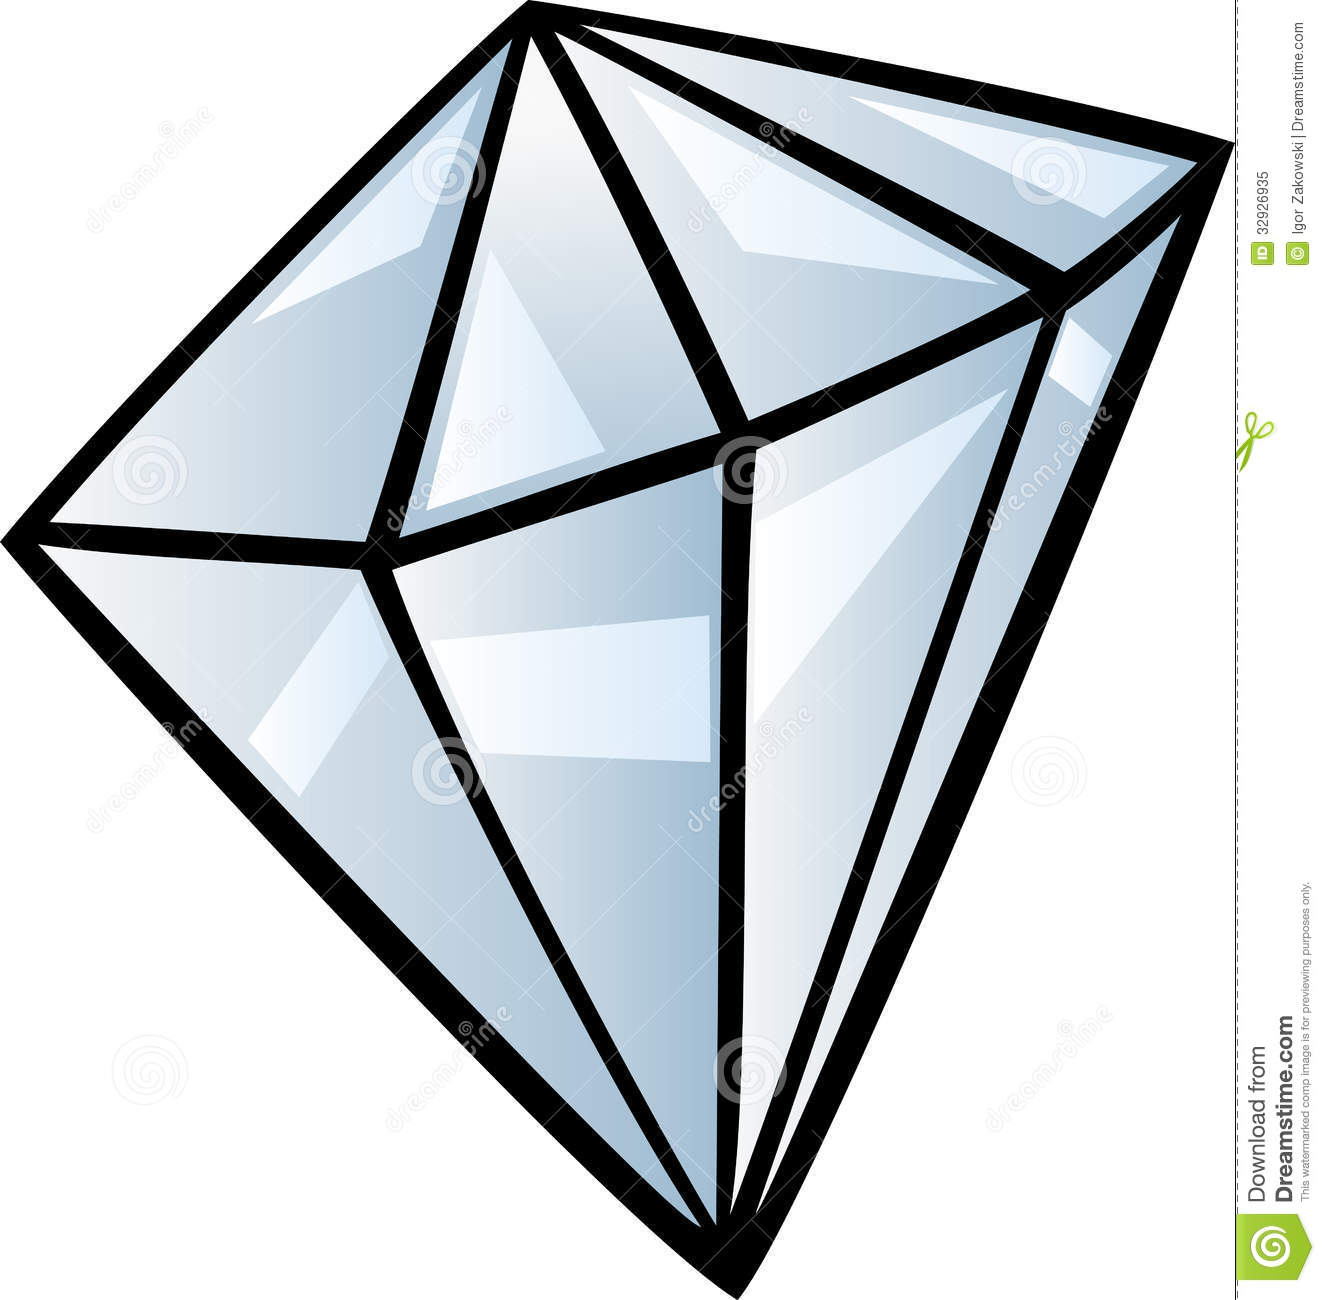 Gems clipart diamond Clip Art clipart Cartoon black